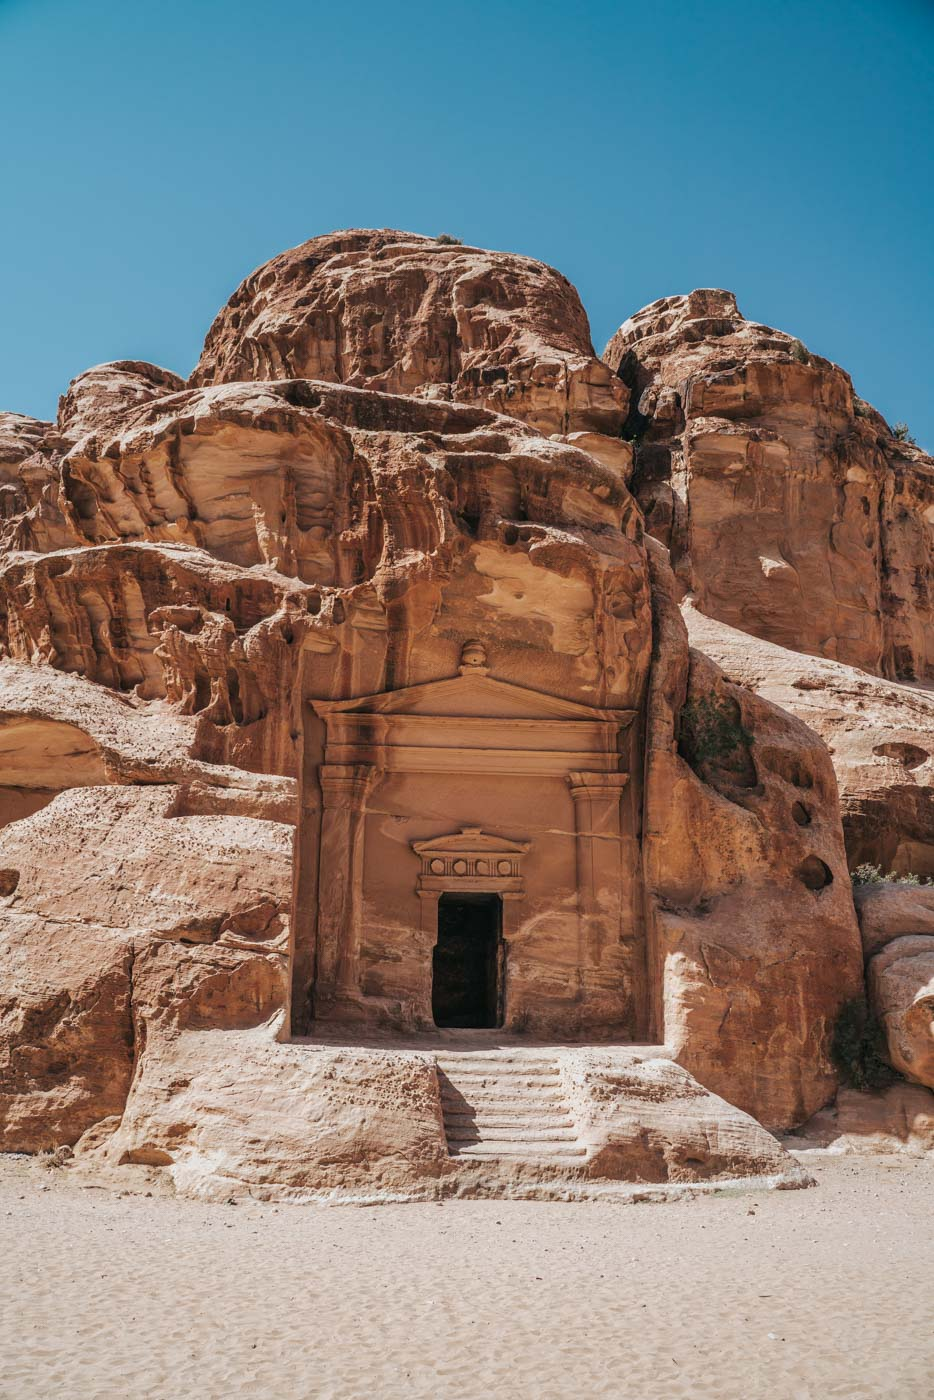 Things to do in Jordan: Little Petra